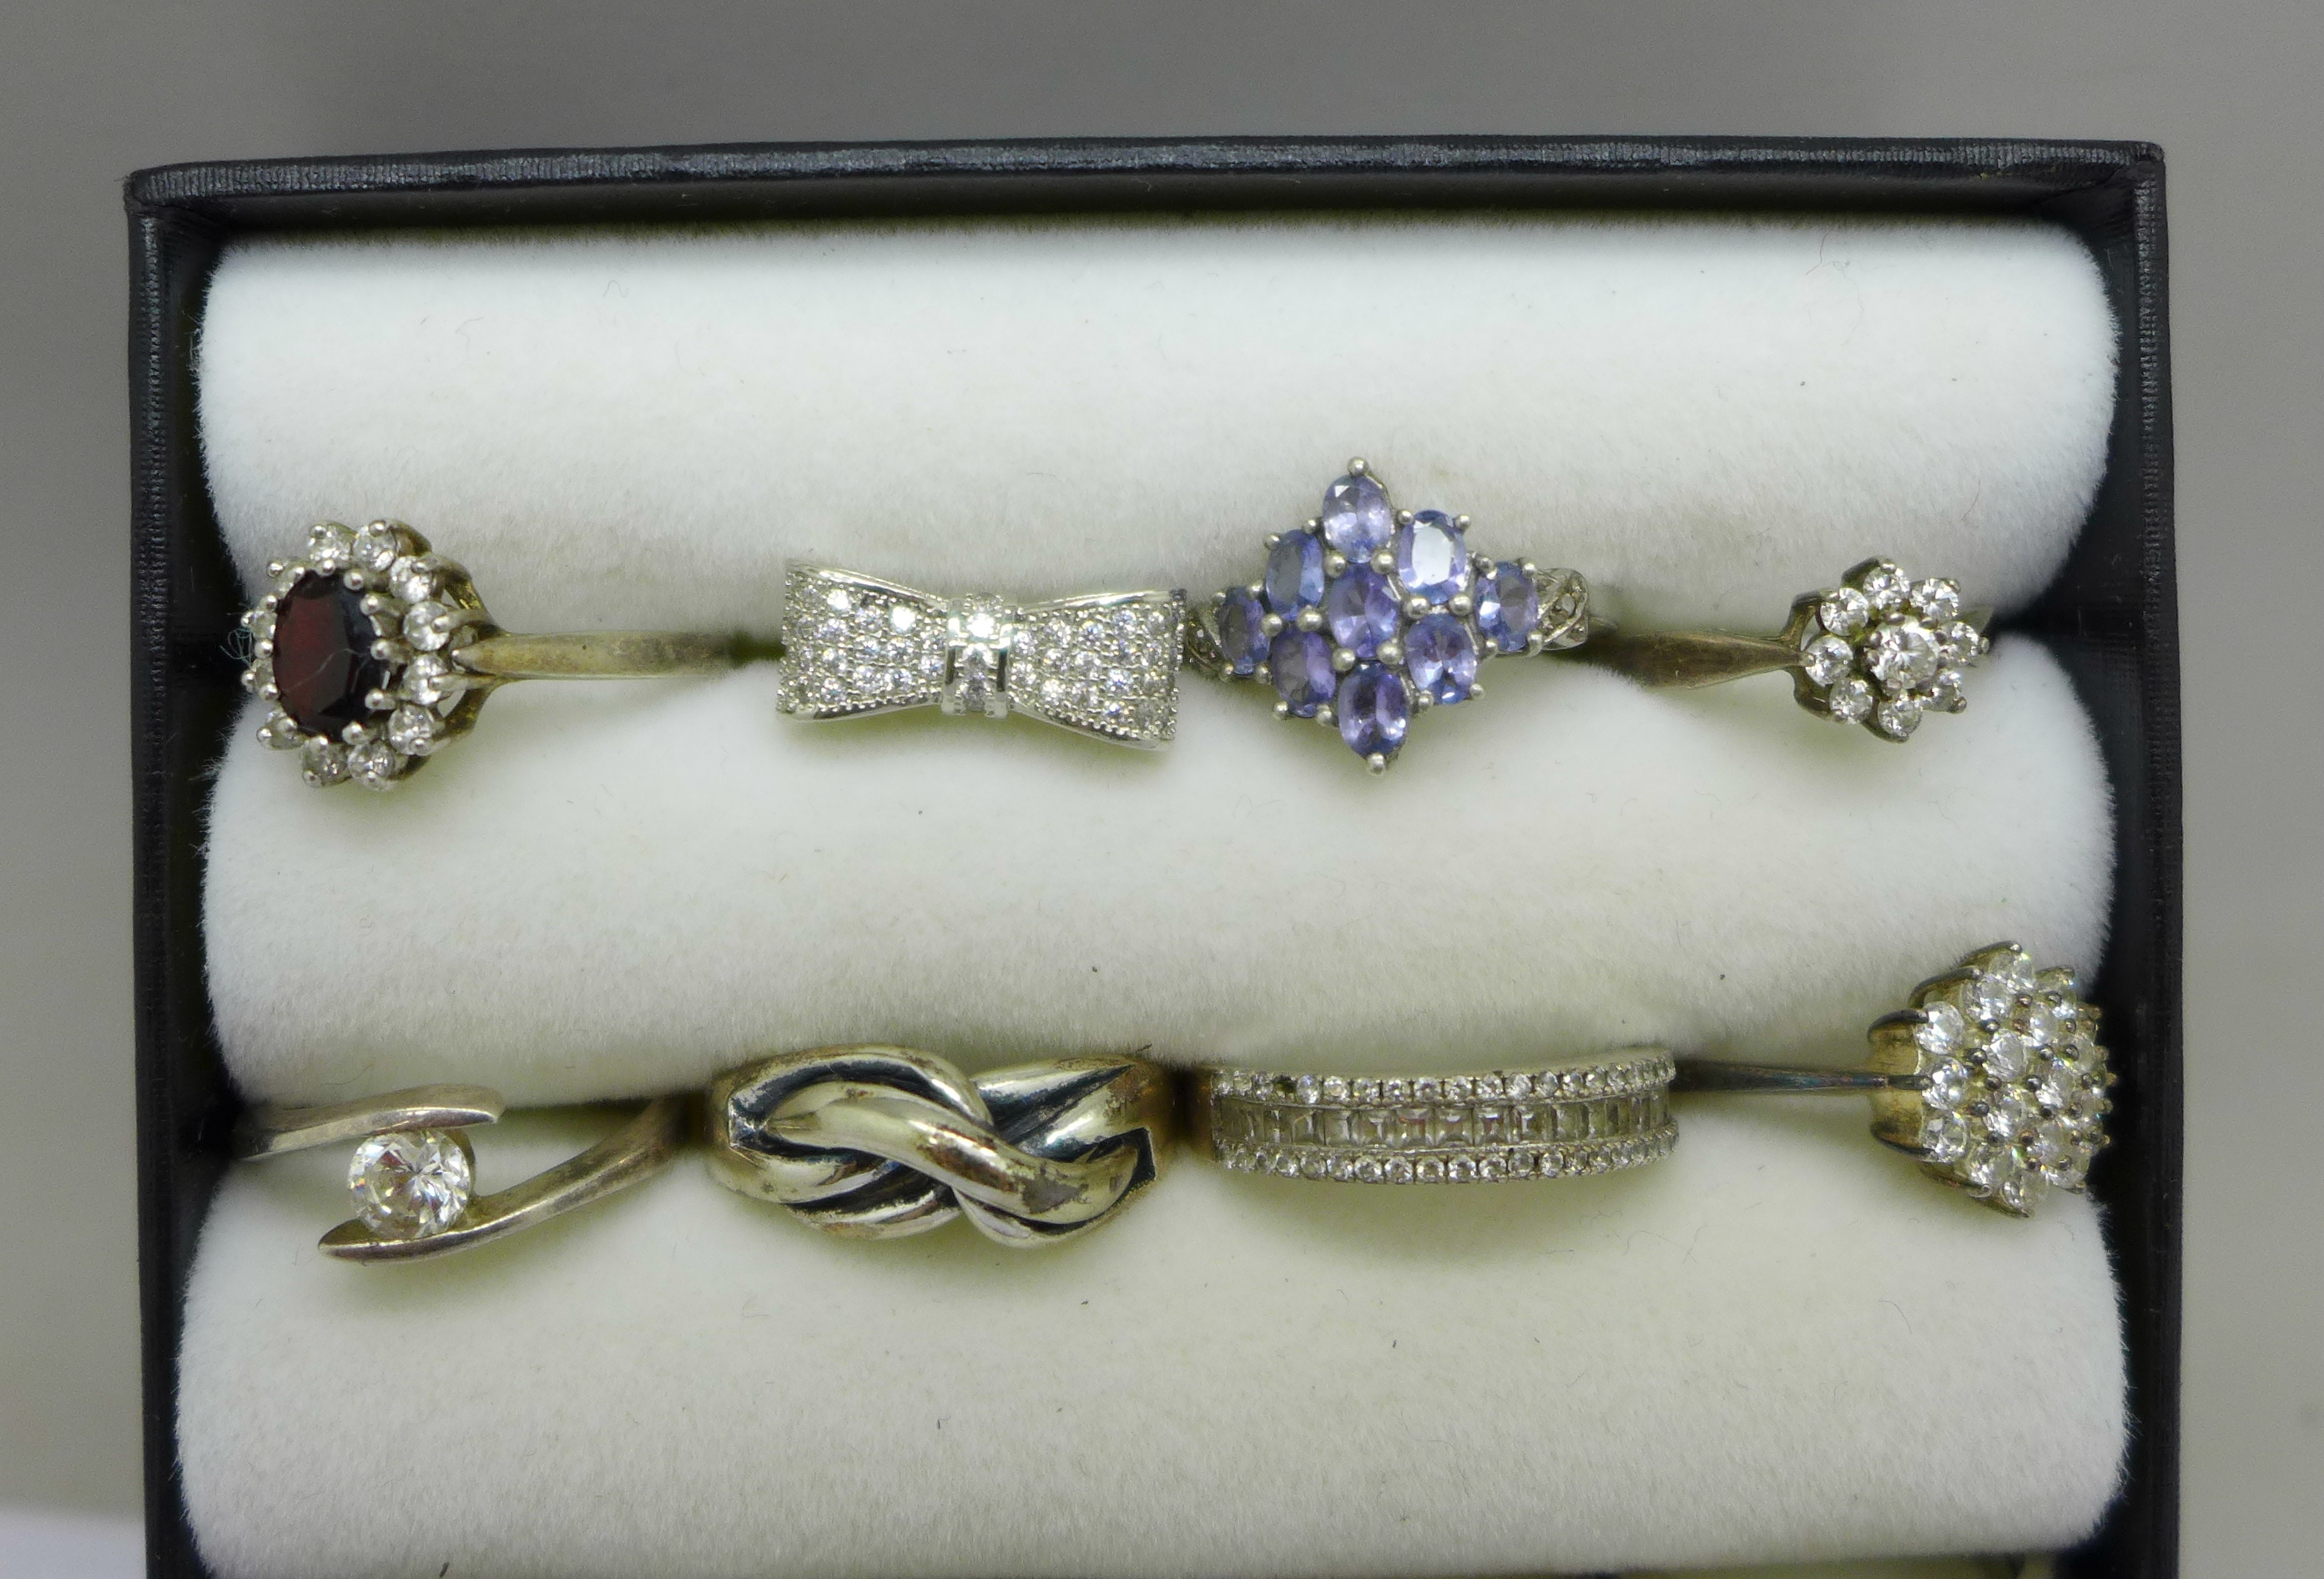 Twelve silver dress rings, most set with stones - Image 2 of 3